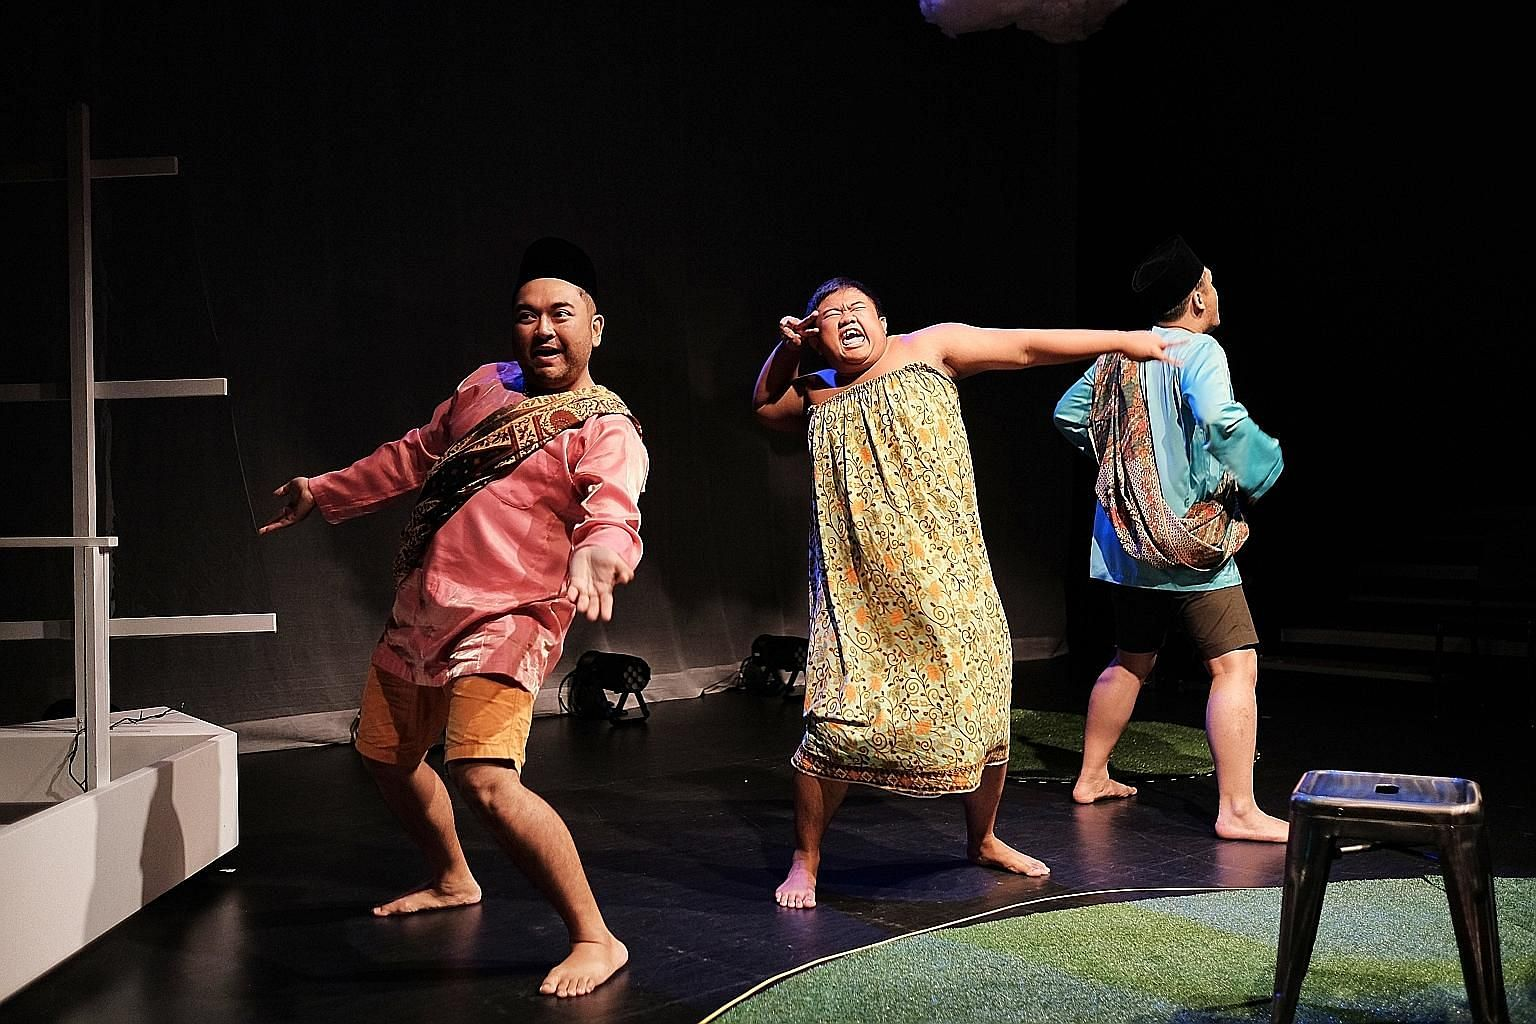 Playwright Nabilah Said picked up Best Original Script for Malay drama Angkat: A Definitive, Alternative, Reclaimed Narrative Of A Native. Freelance designer Loo An Ni received Best Costume for Mandarin play First Fleet. Theatre practitioner Petrina